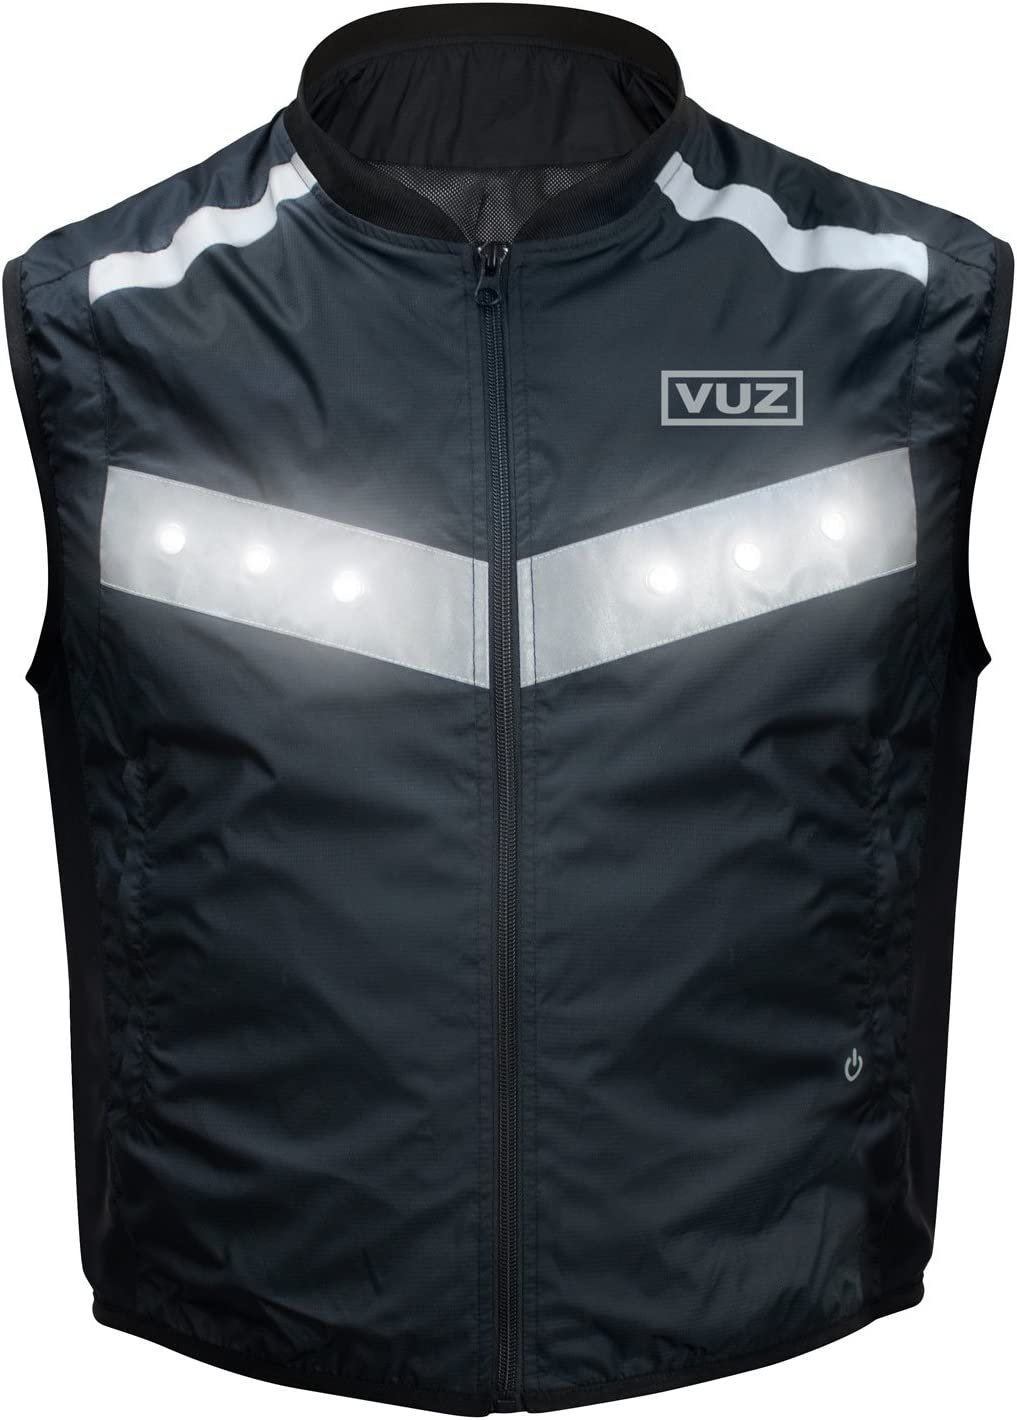 L Cycling Waterproof Biking Fits Over Jacket VUZ Moto LED Reflective Safety Motorcycle Vest with Rechargeable 8 Hour Battery Perfect for Running